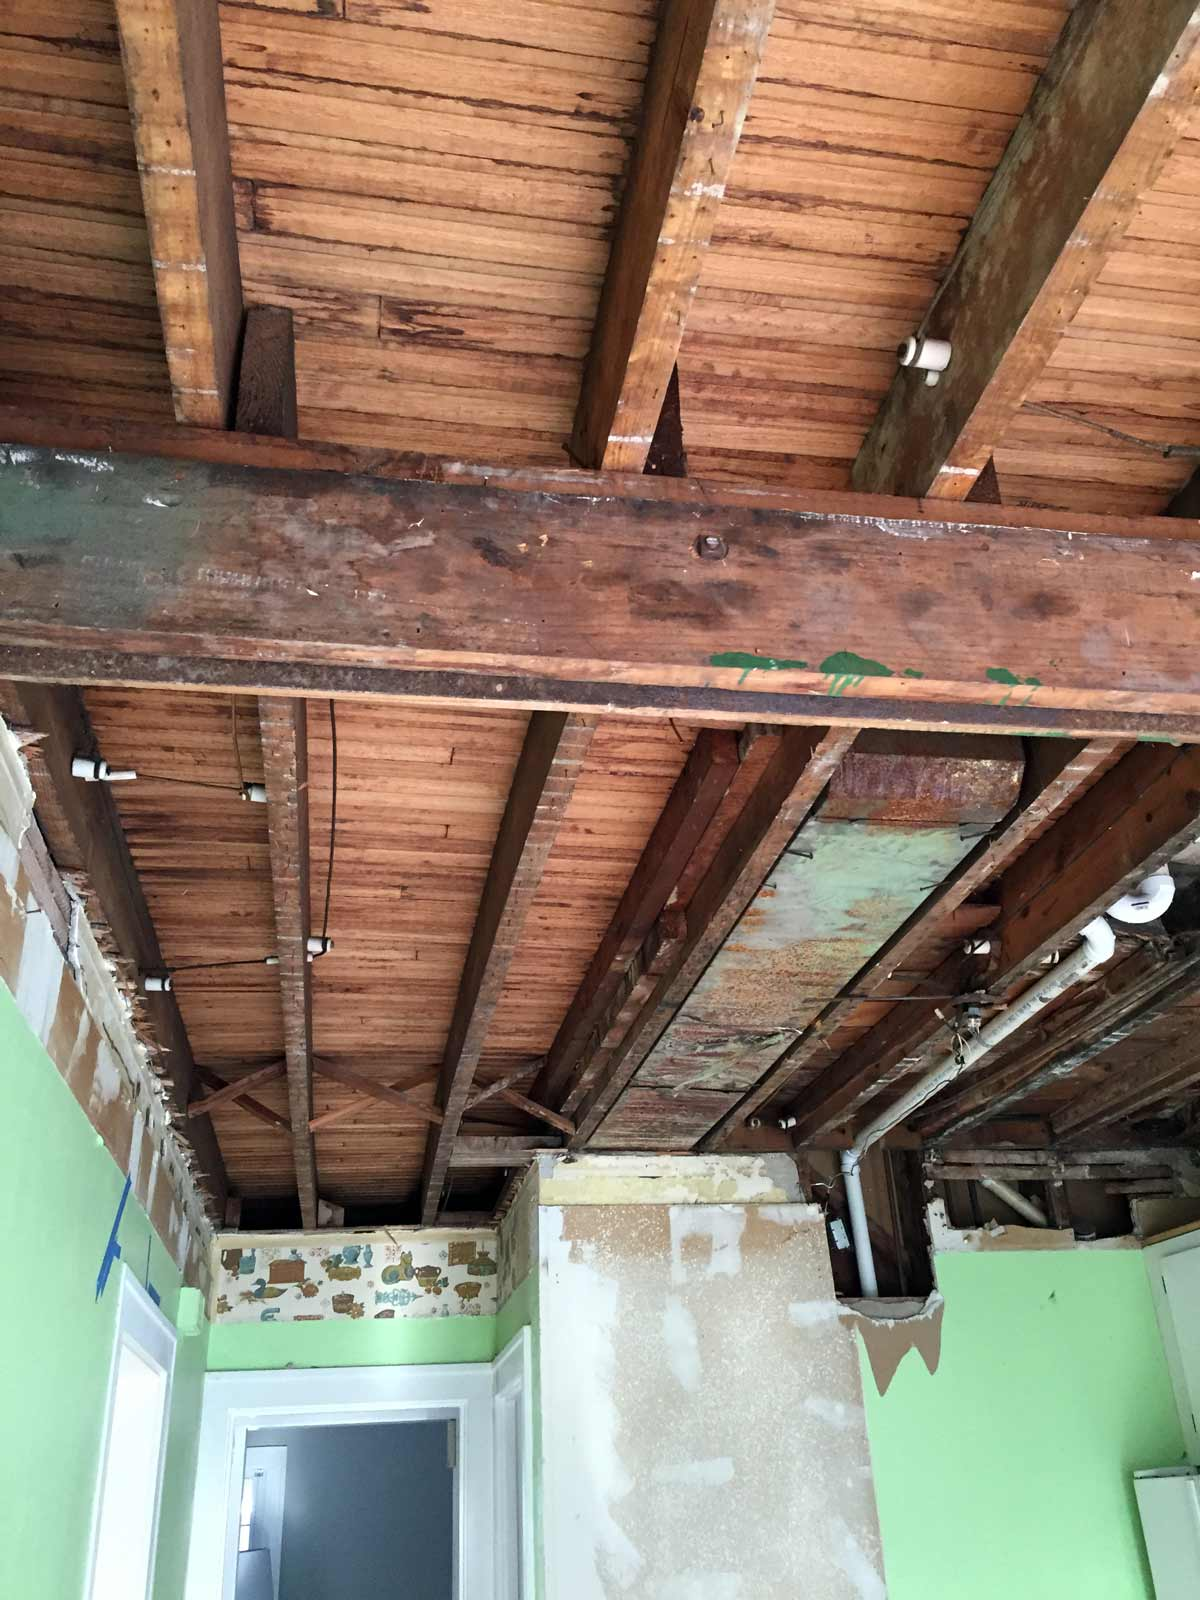 Exposed beams after removing drywall, plaster, and lath ceilings under drop ceiling